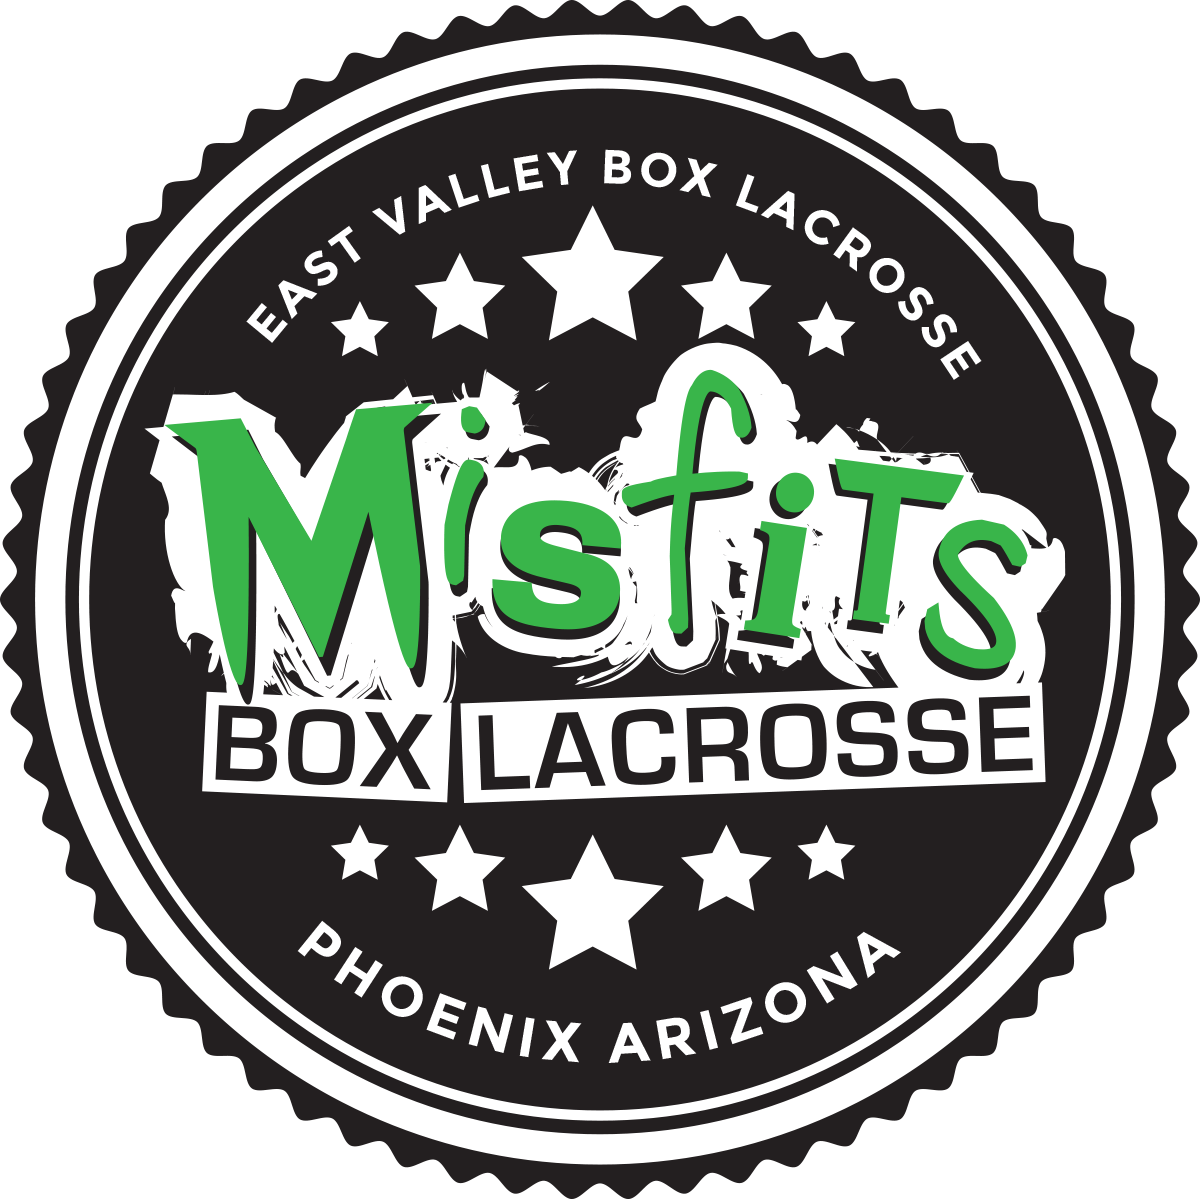 Misfits Box Lacrosse League